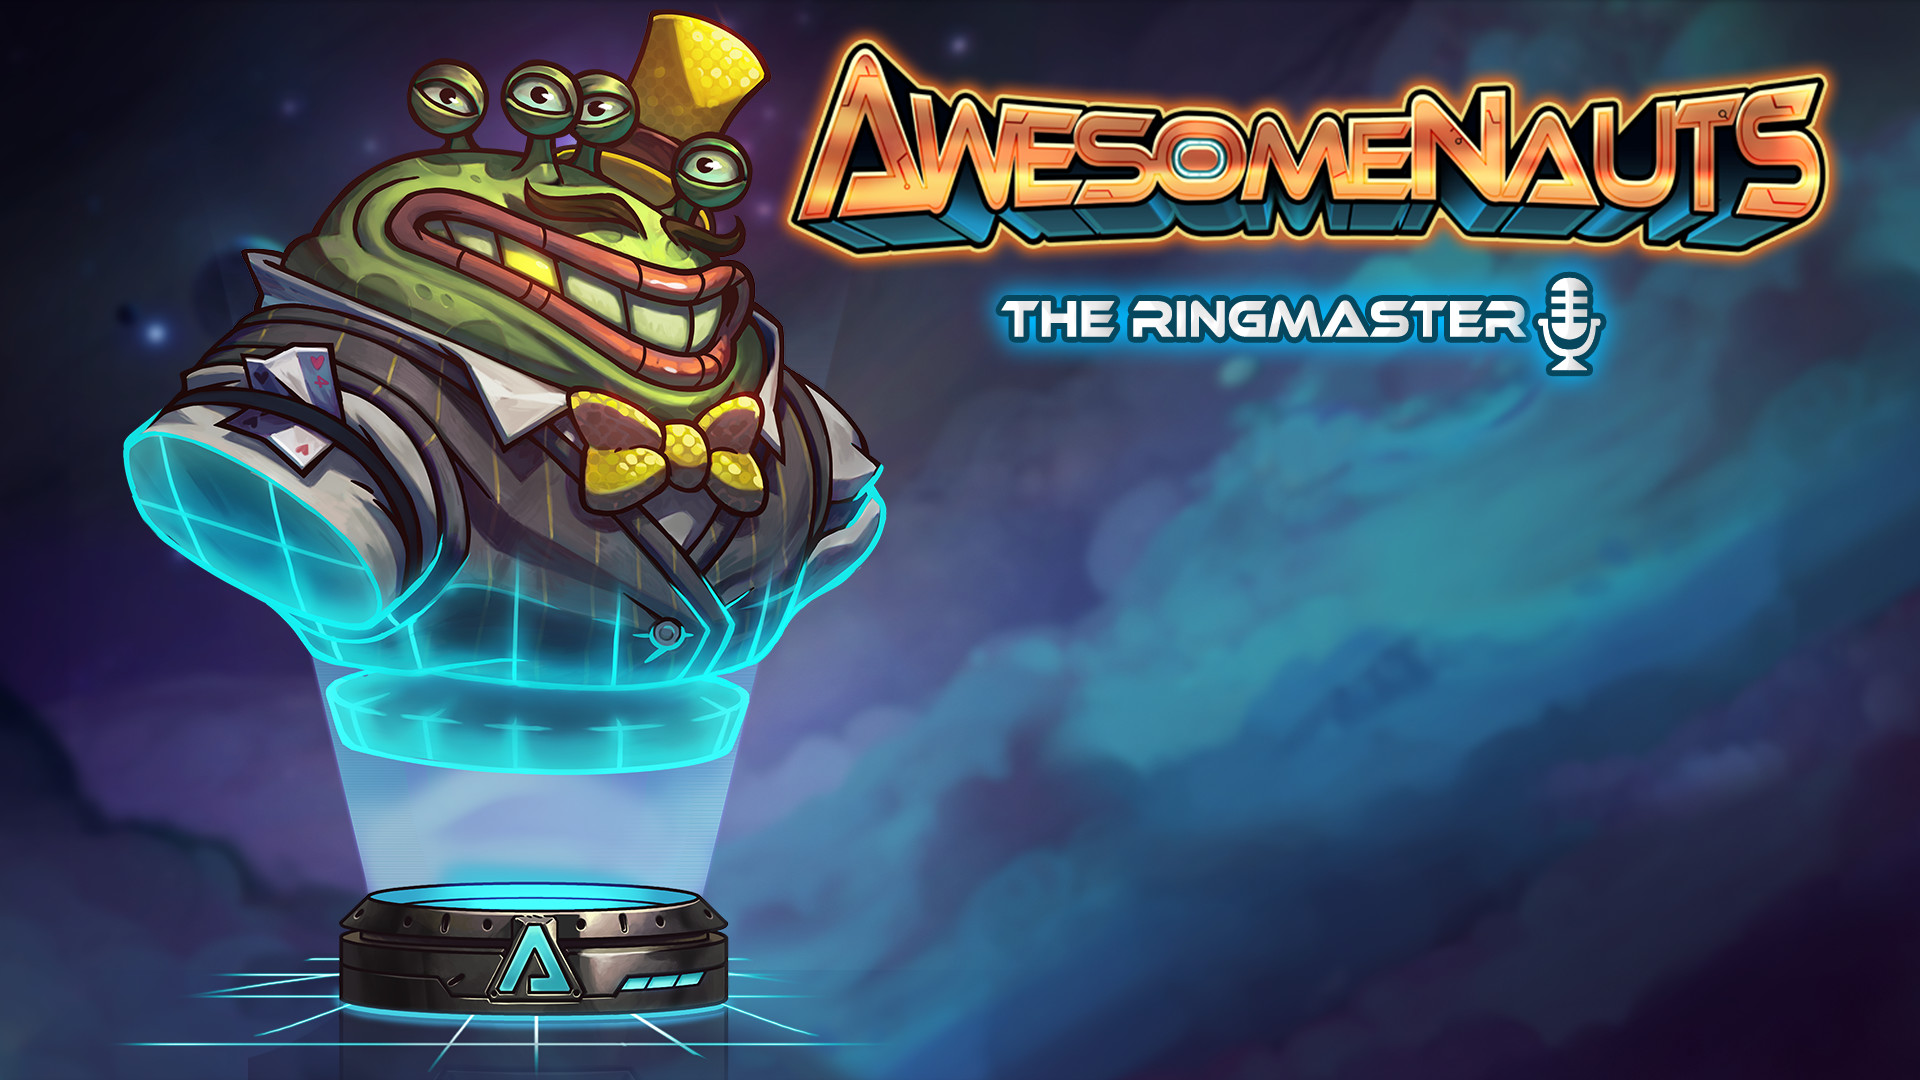 Awesomenauts - The Ringmaster (Announcer) screenshot